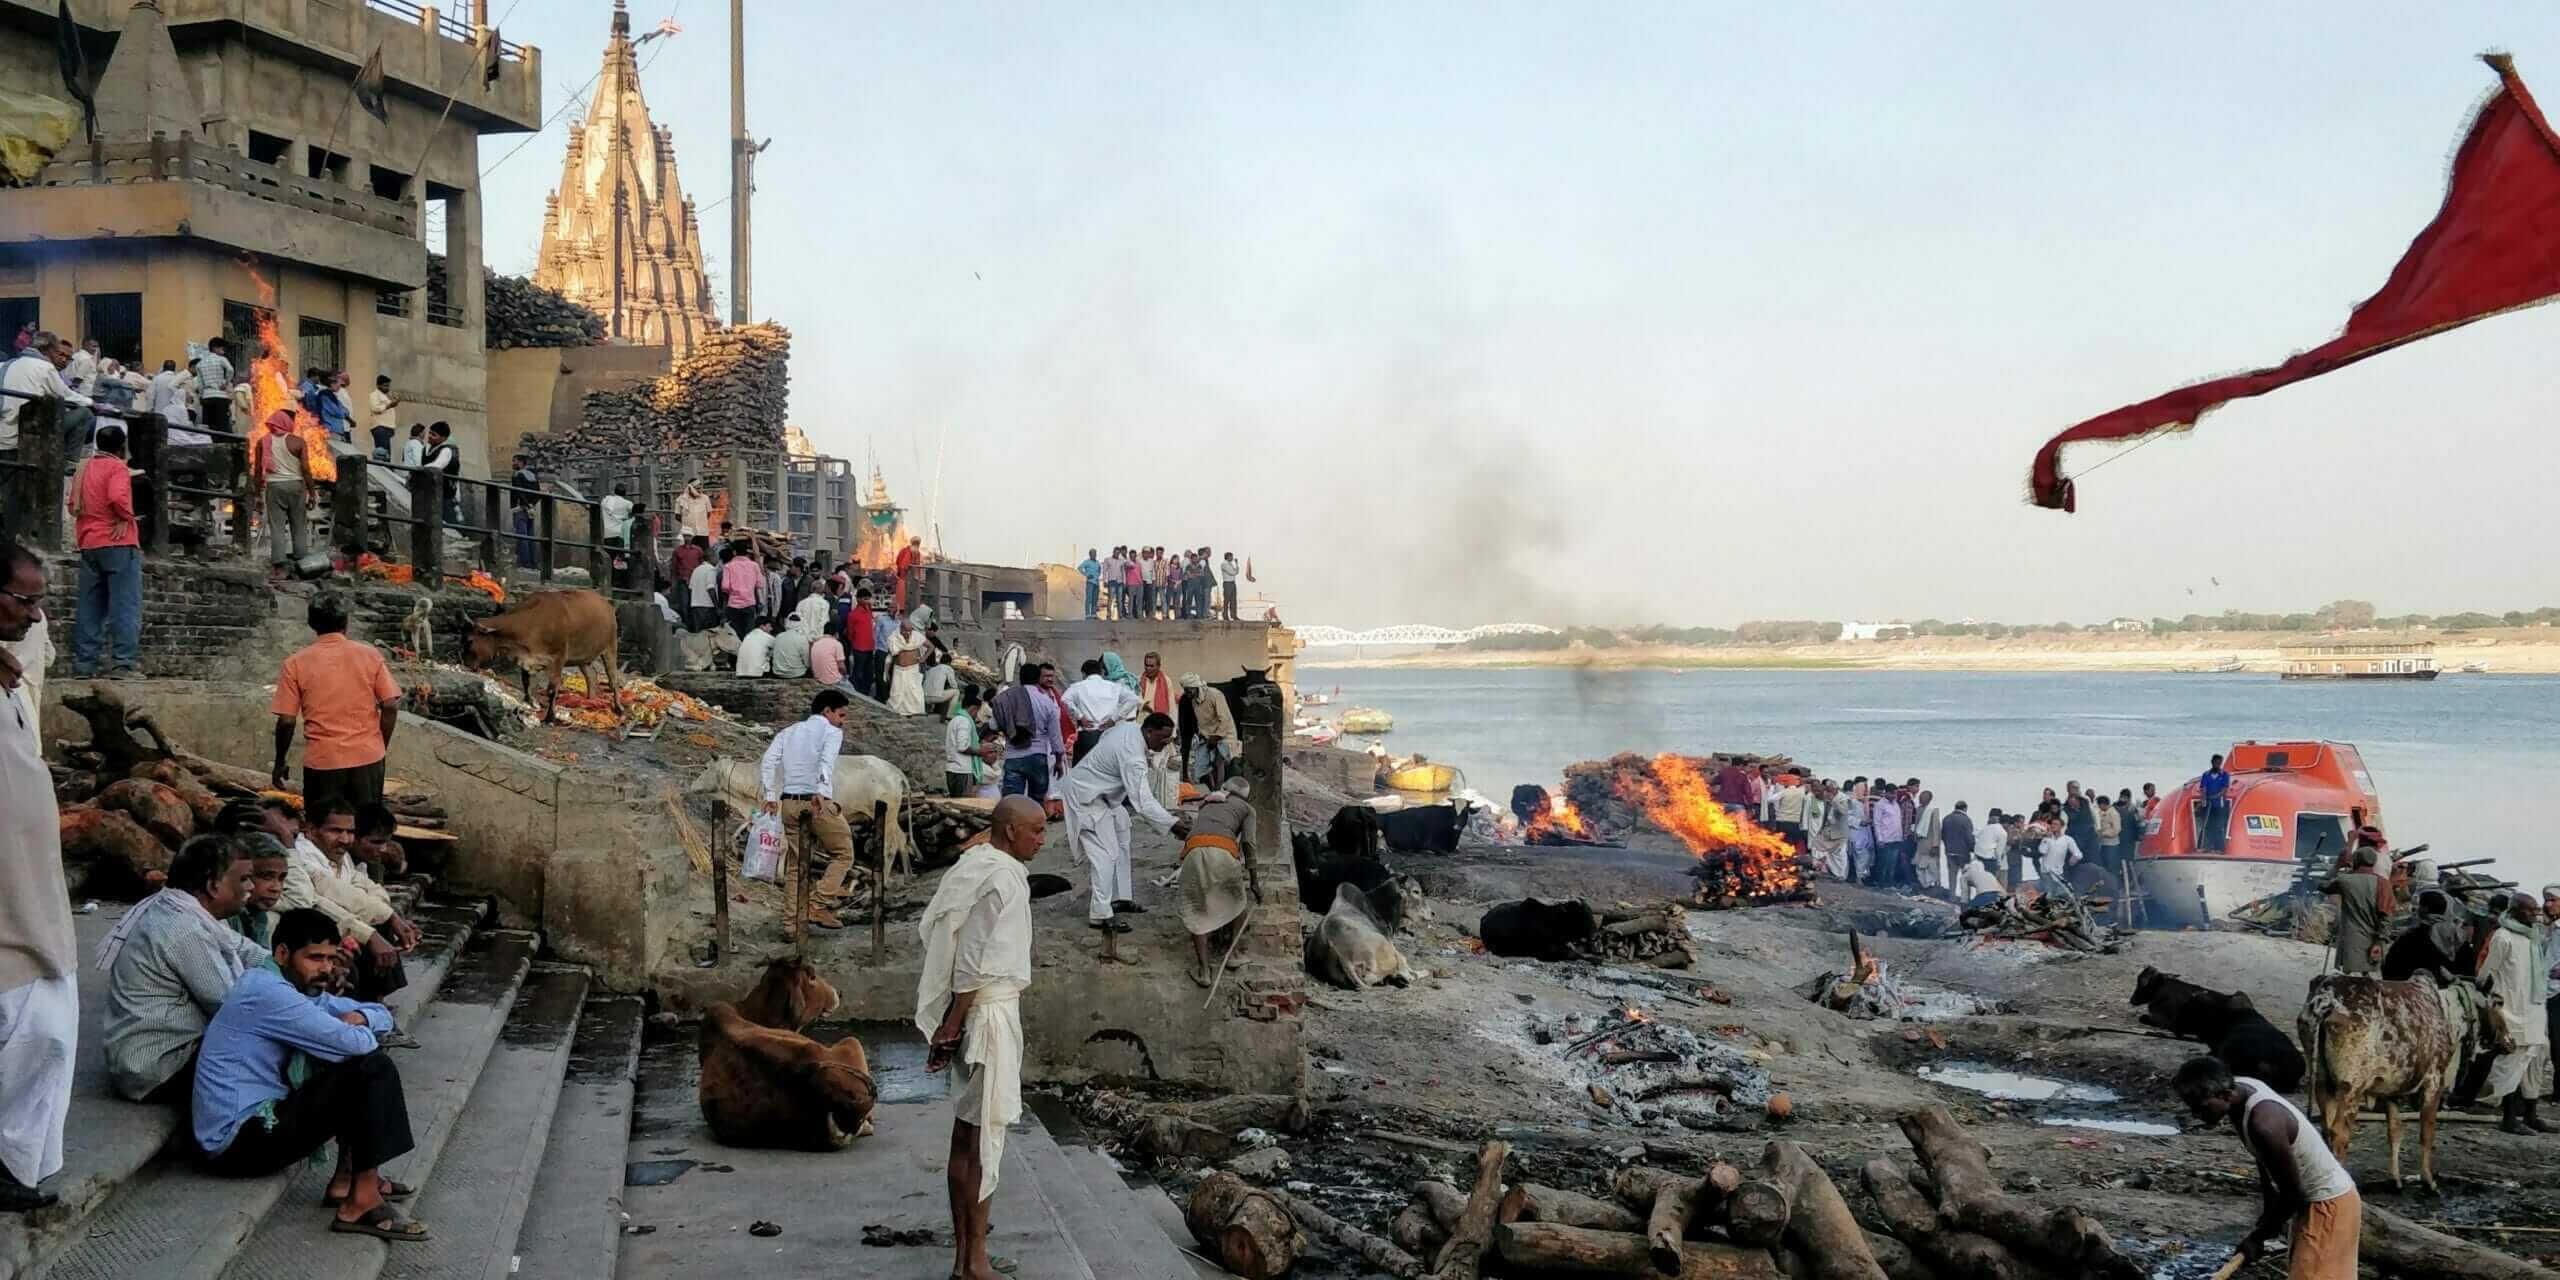 The Manikarnika Ghat inVaranasi is famous for burning bodies. Thiscremation ghat left me in awe for a good two hours while I watched, smelled, and heard multiple dead human bodies burn right before me.